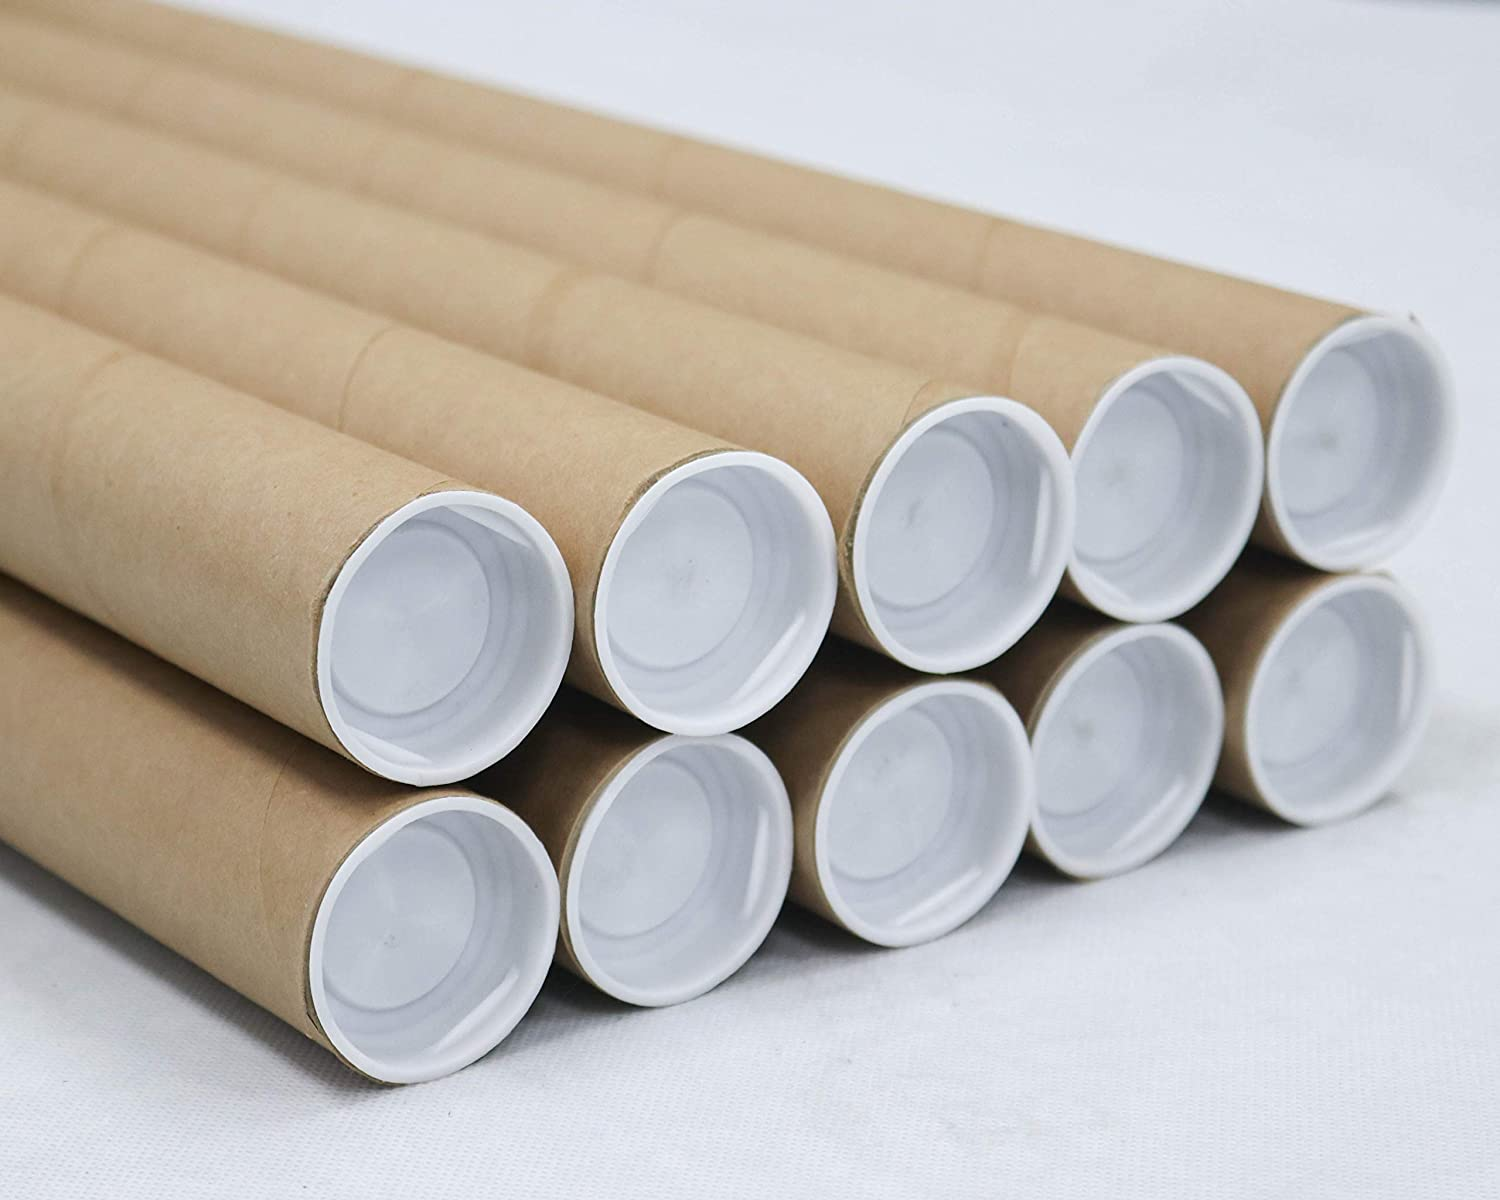 1.5 cheap inch Luxury x 12 Mailing Tubes Pack MagicWat 10 Caps with